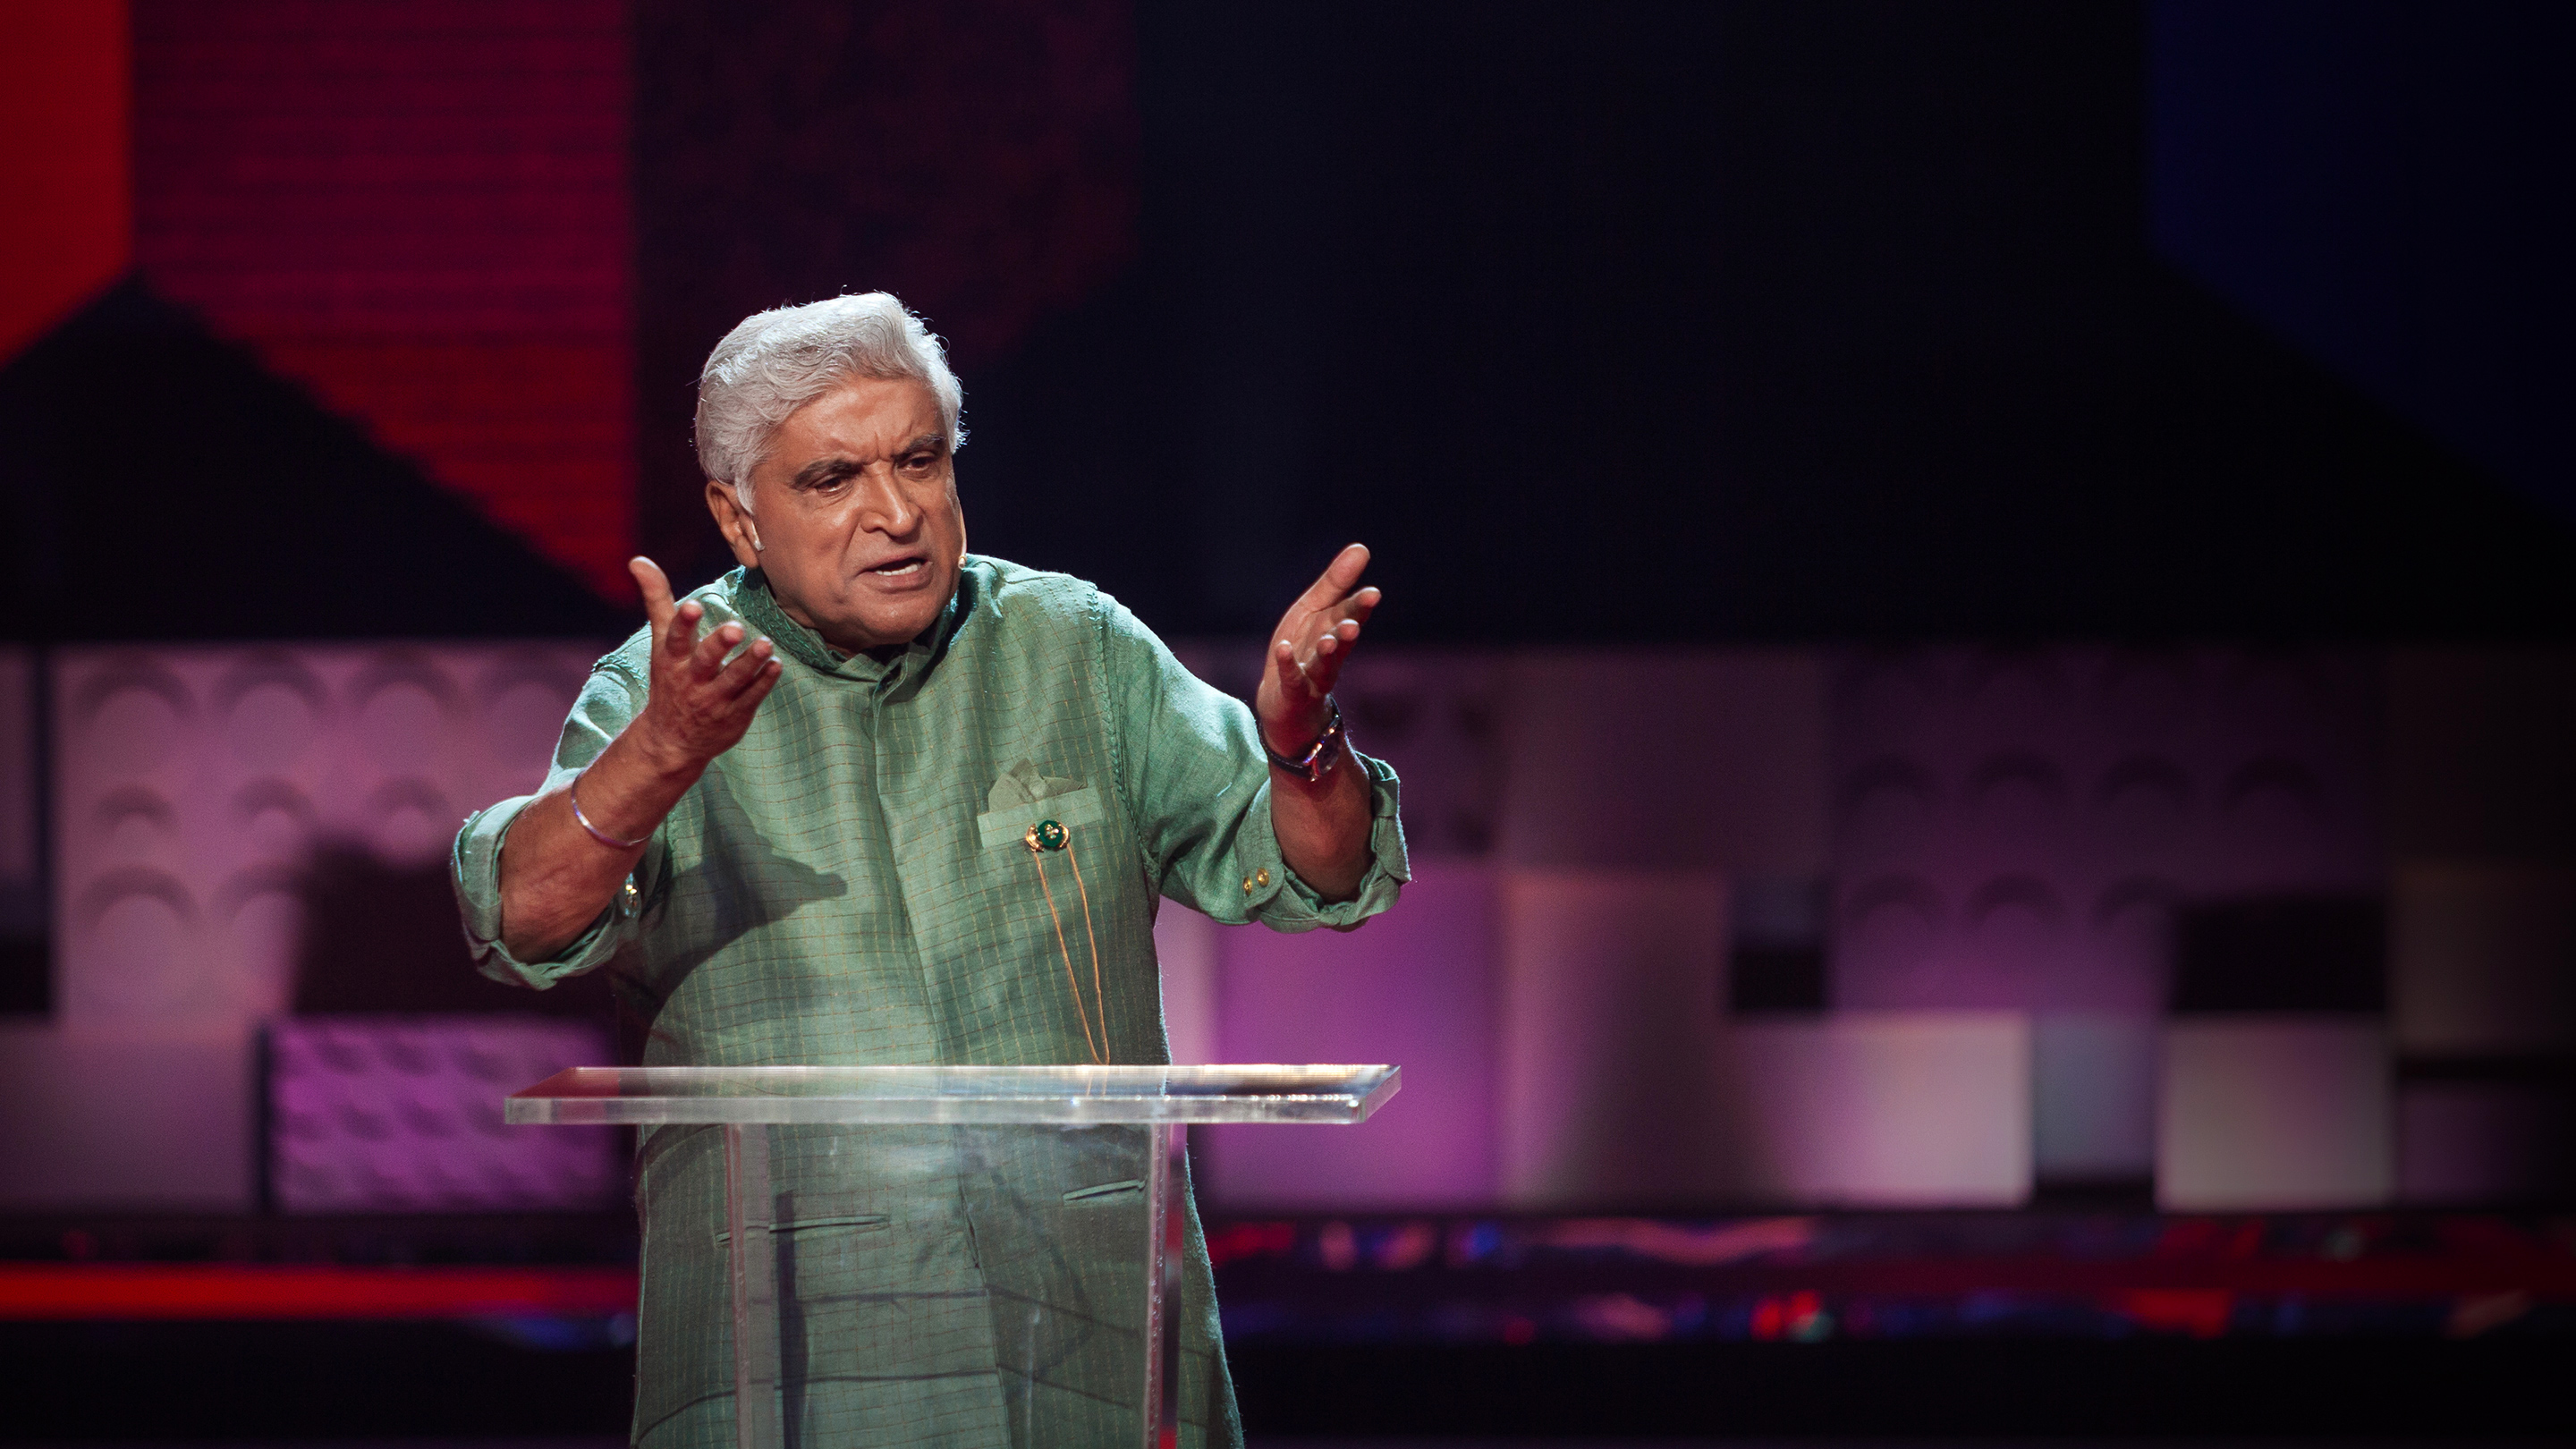 Javed Akhtar: The gift of words | TED Talk